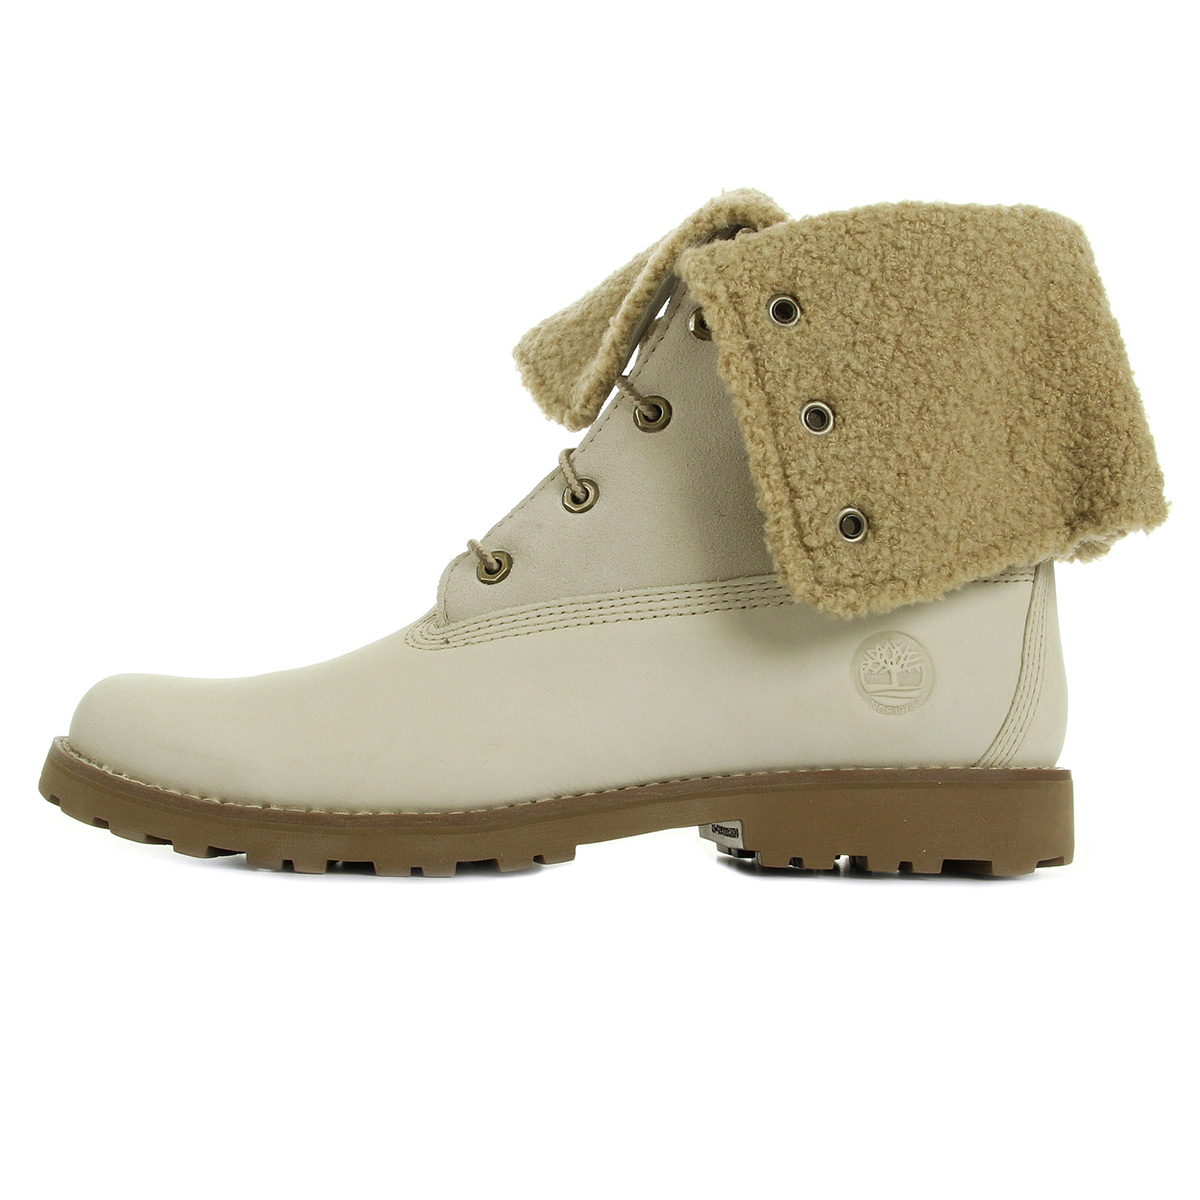 Timberland Auth 6 In WP Shearling Bt C21926, Boots femme